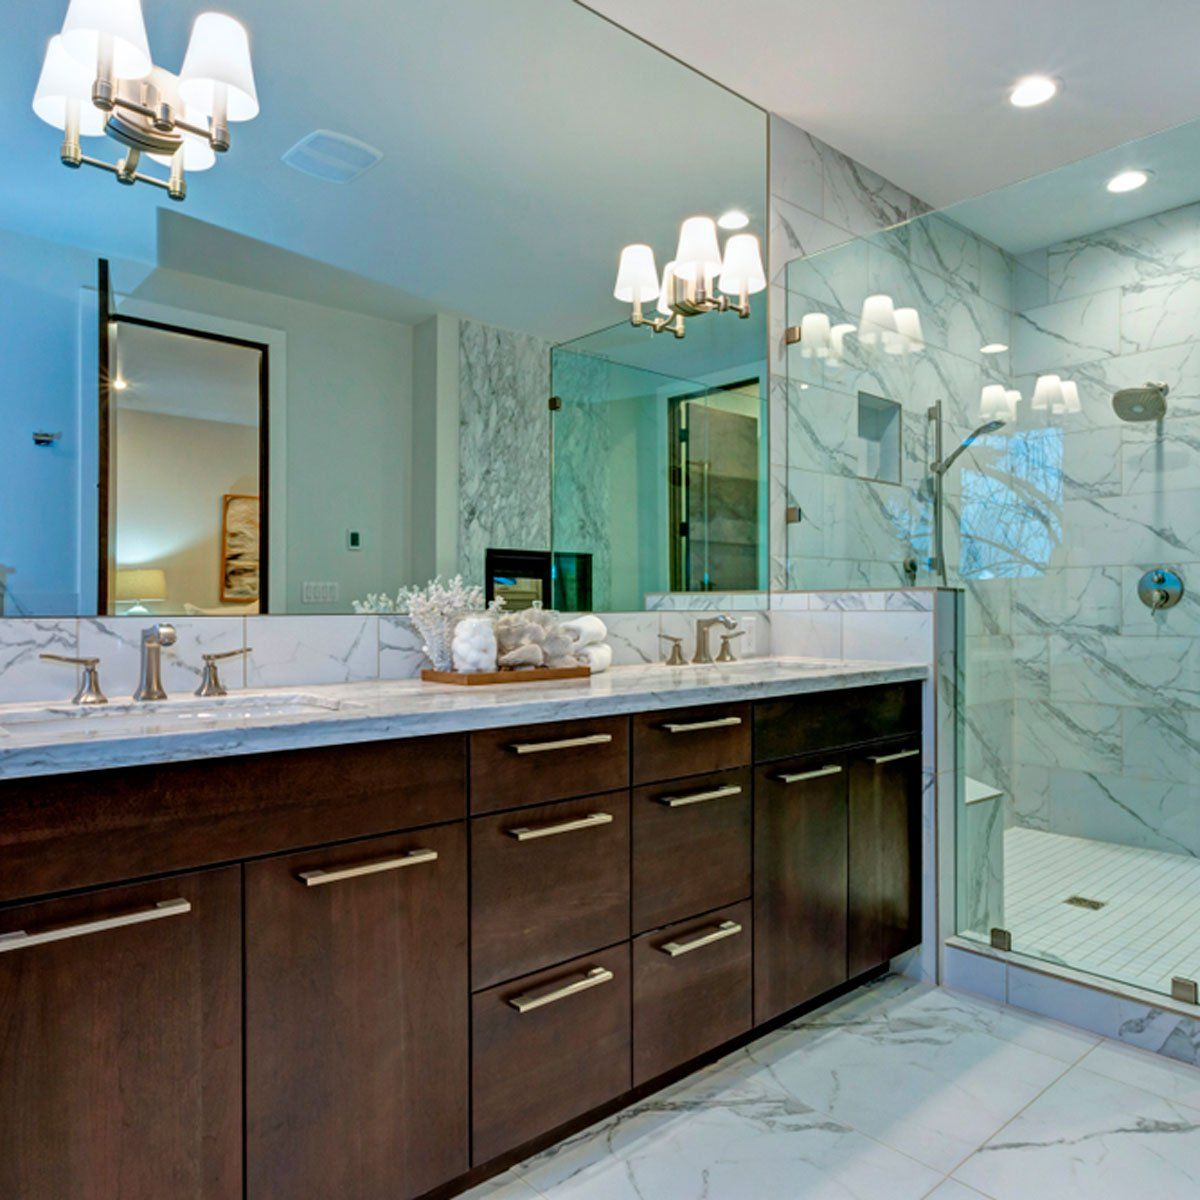 20 Inexpensive Ways To Make Your Home Look More Expensive Bathrooms Remodel Bathroom Remodel Cost Bathroom Design